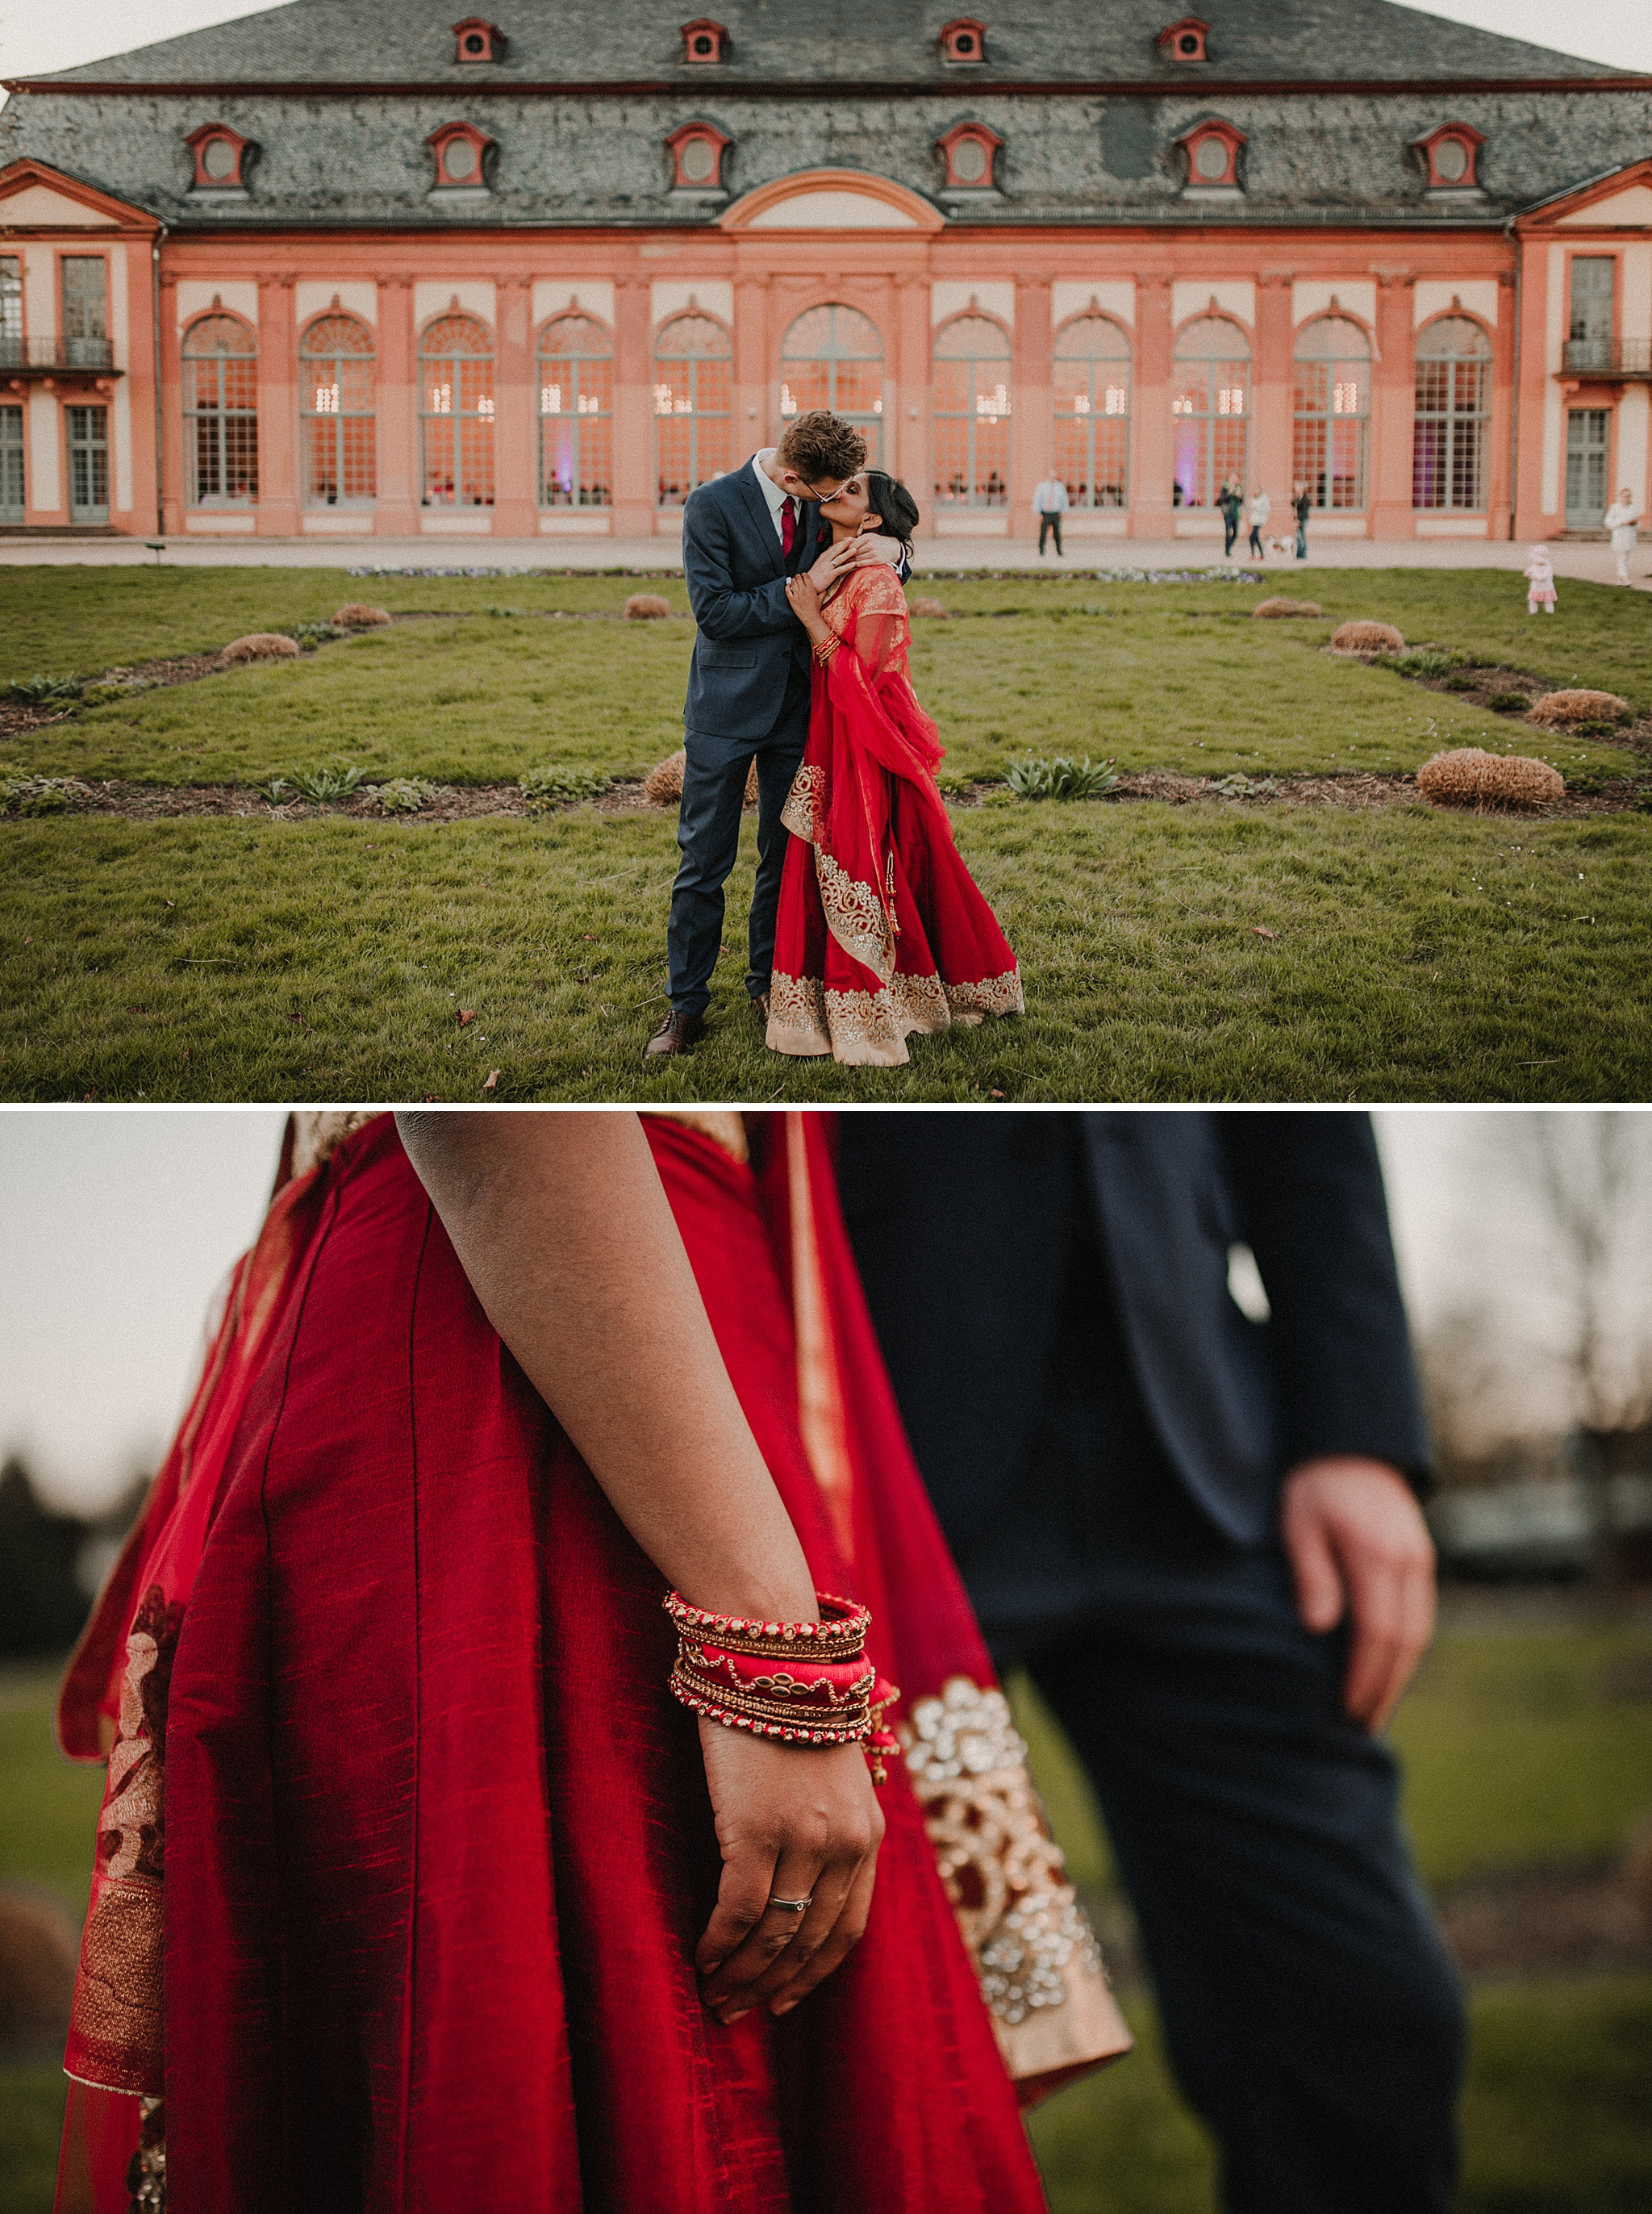 darmstadt wedding photographer,